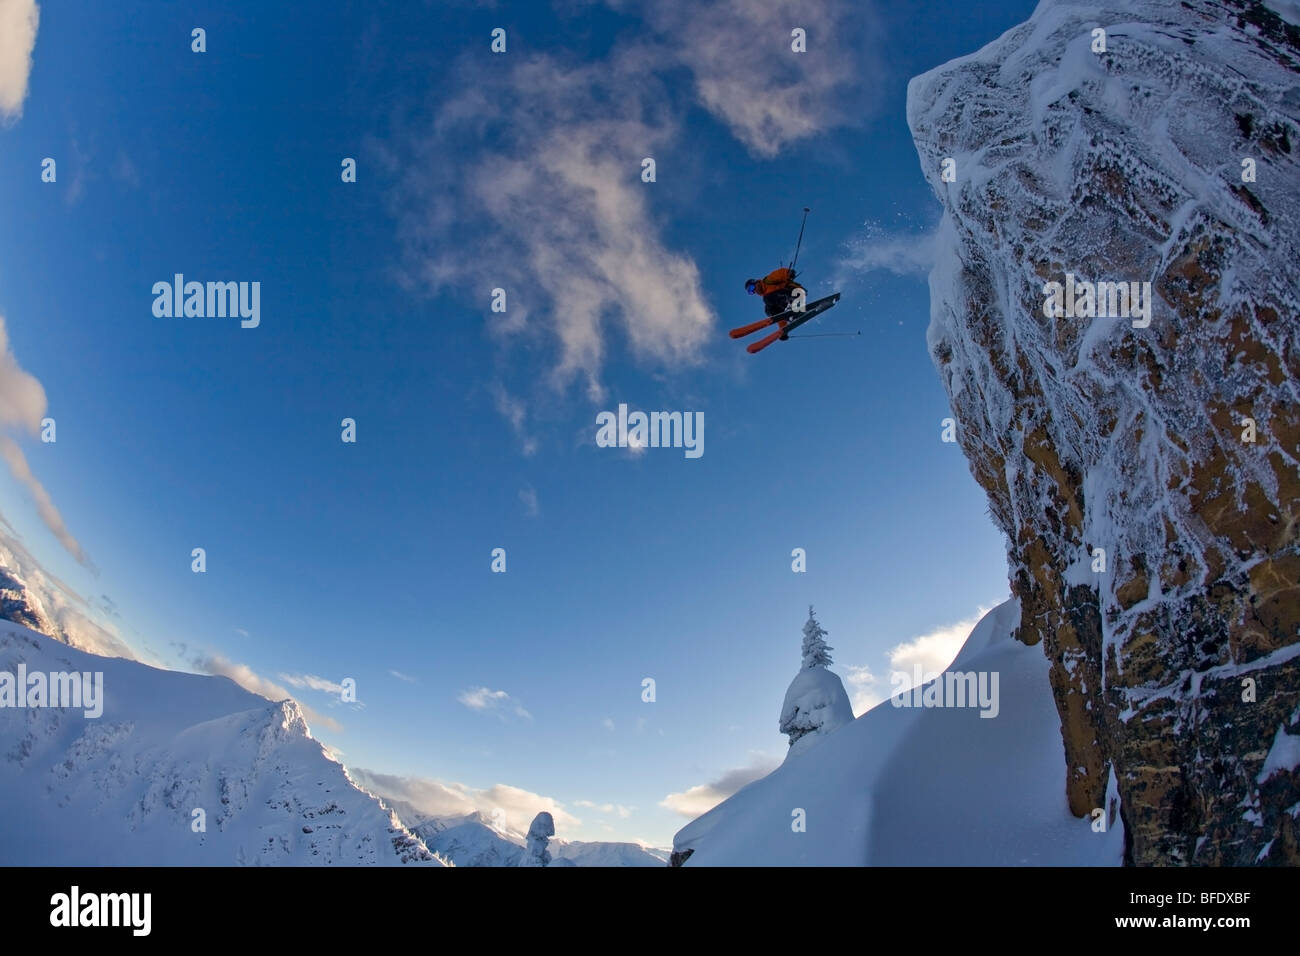 A skier catching big air in the backcountry of Kicking Horse, Golden, British Columbia, Canada - Stock Image